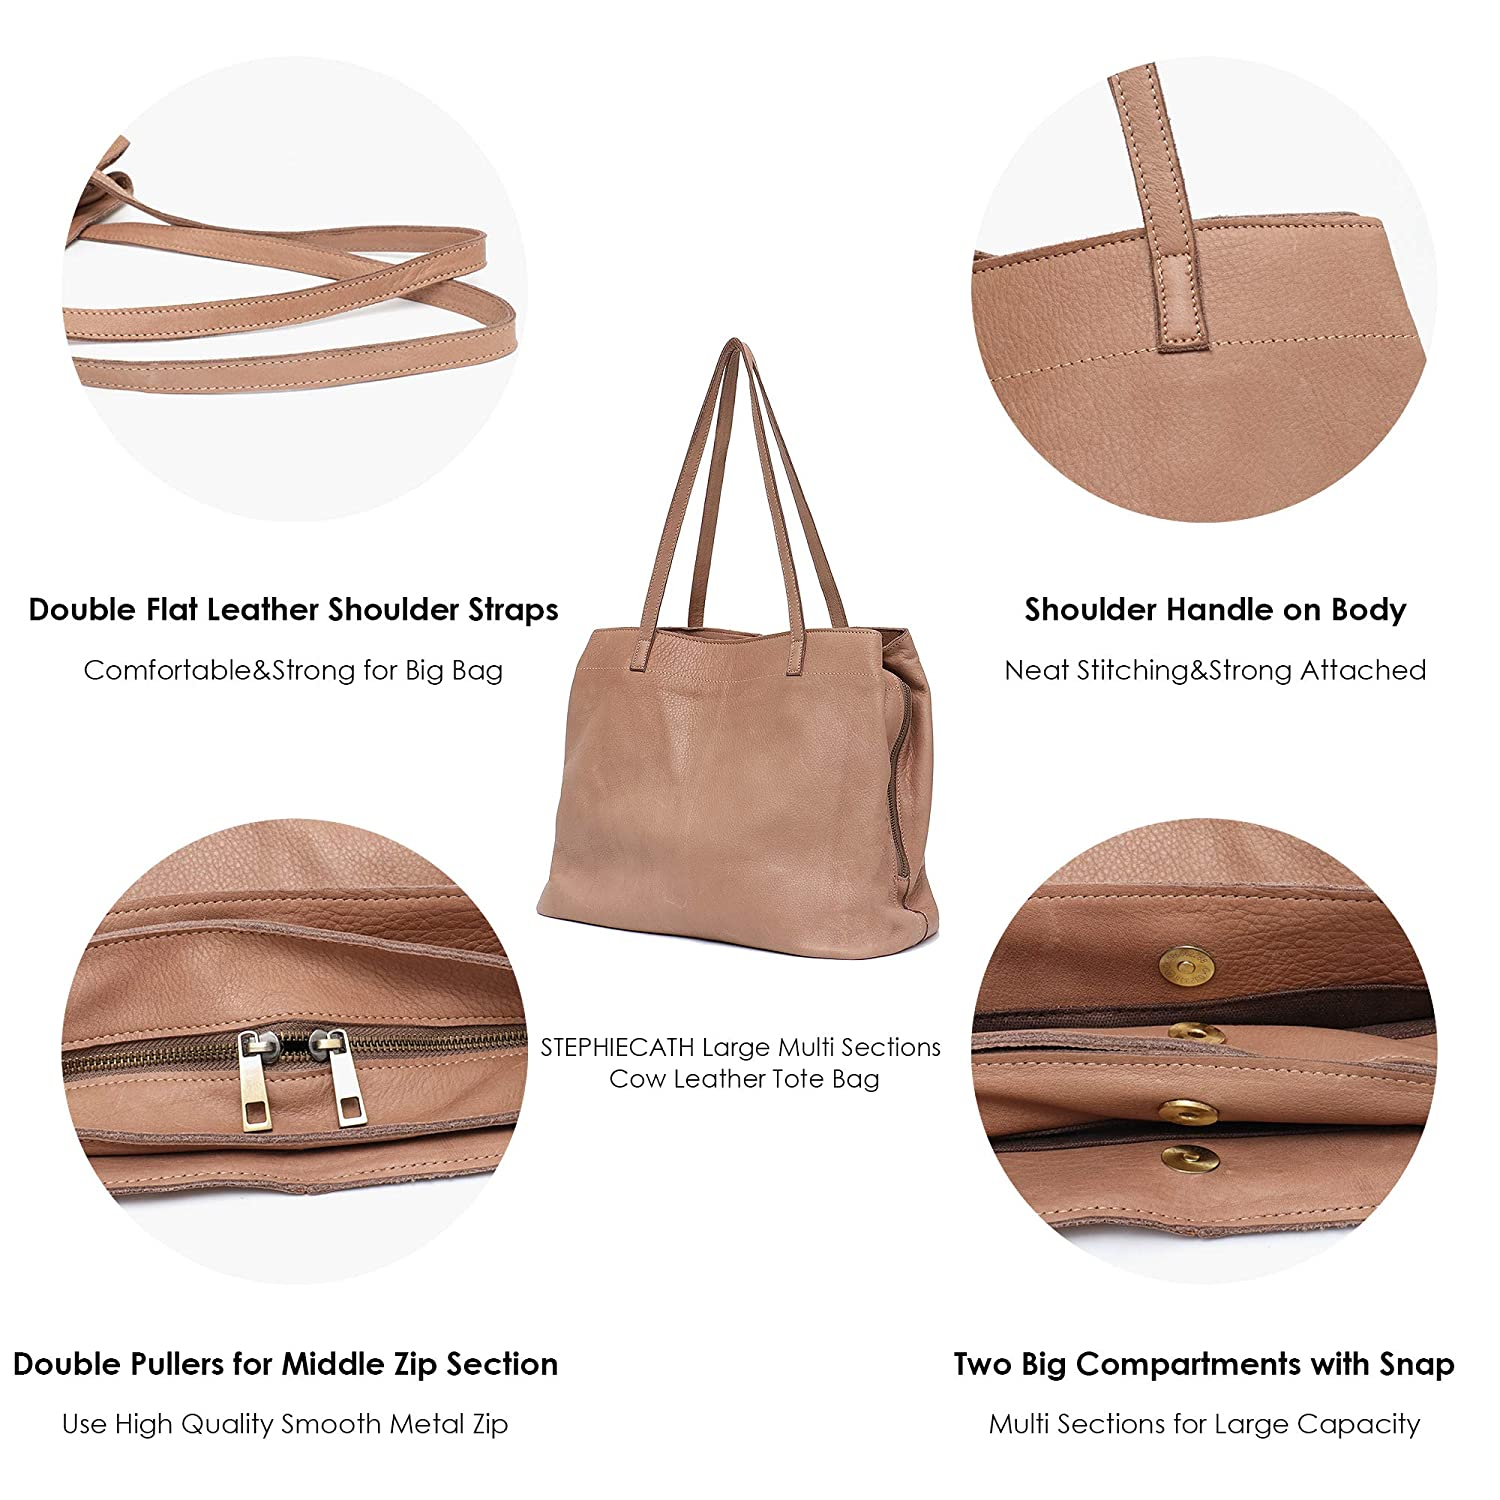 fc8a90005188 Amazon.com  STEPHIECATH Women Tote-handbags Italian Cow Leather Women s  Vintage Style Soft Leather Work Tote Shoulder Bag Large Capacity Multi  Sections ...